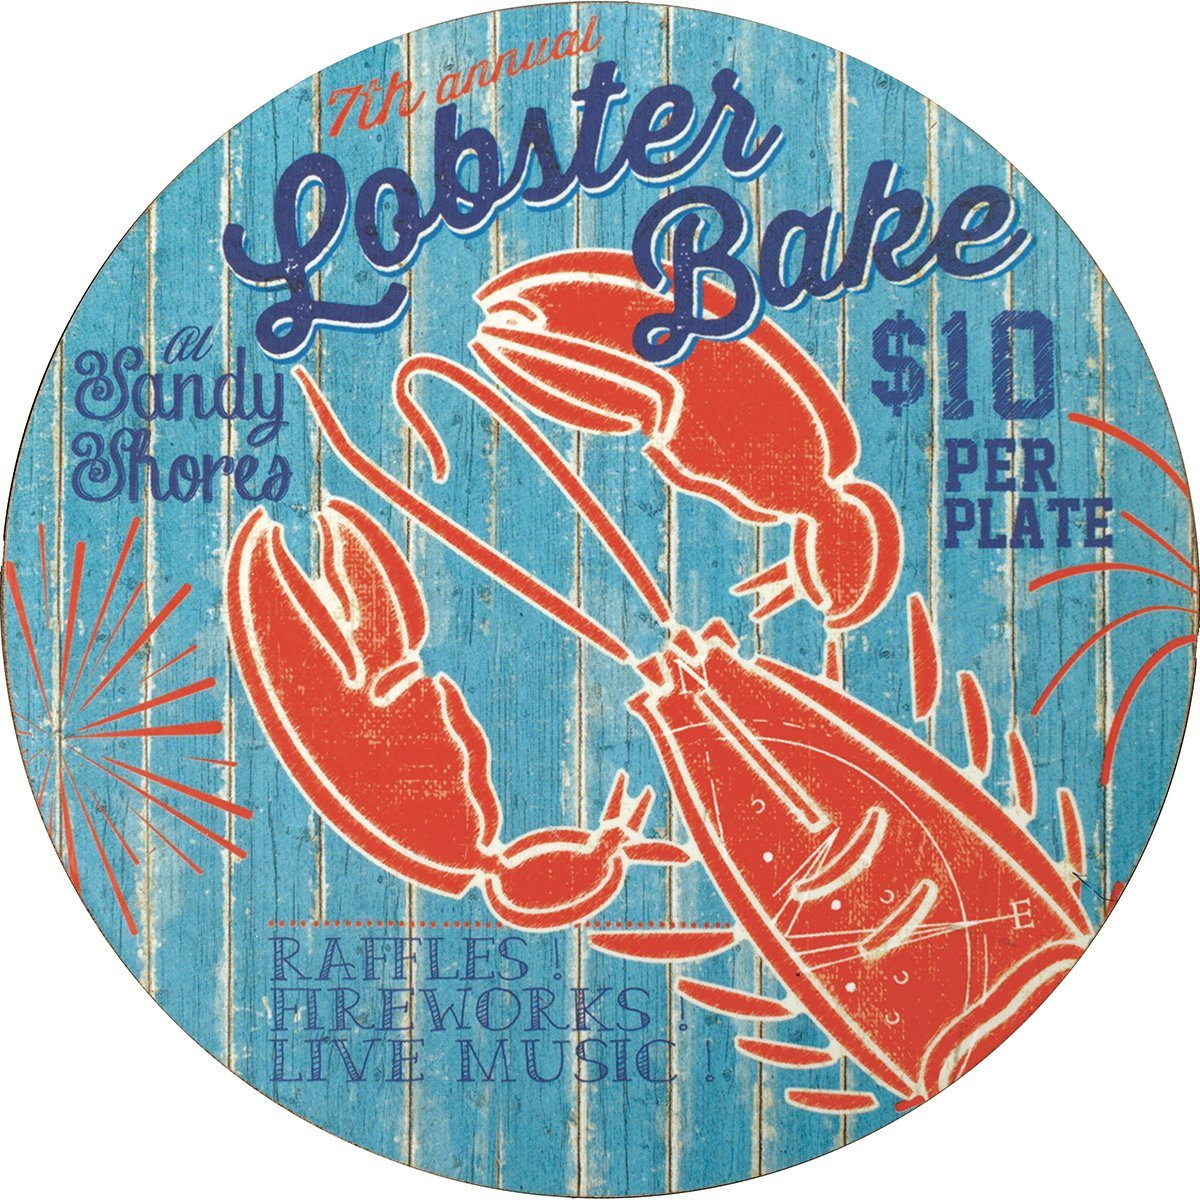 Lobster Bake Round Art Coasters - Set of Four - rockflowerpaper LLC